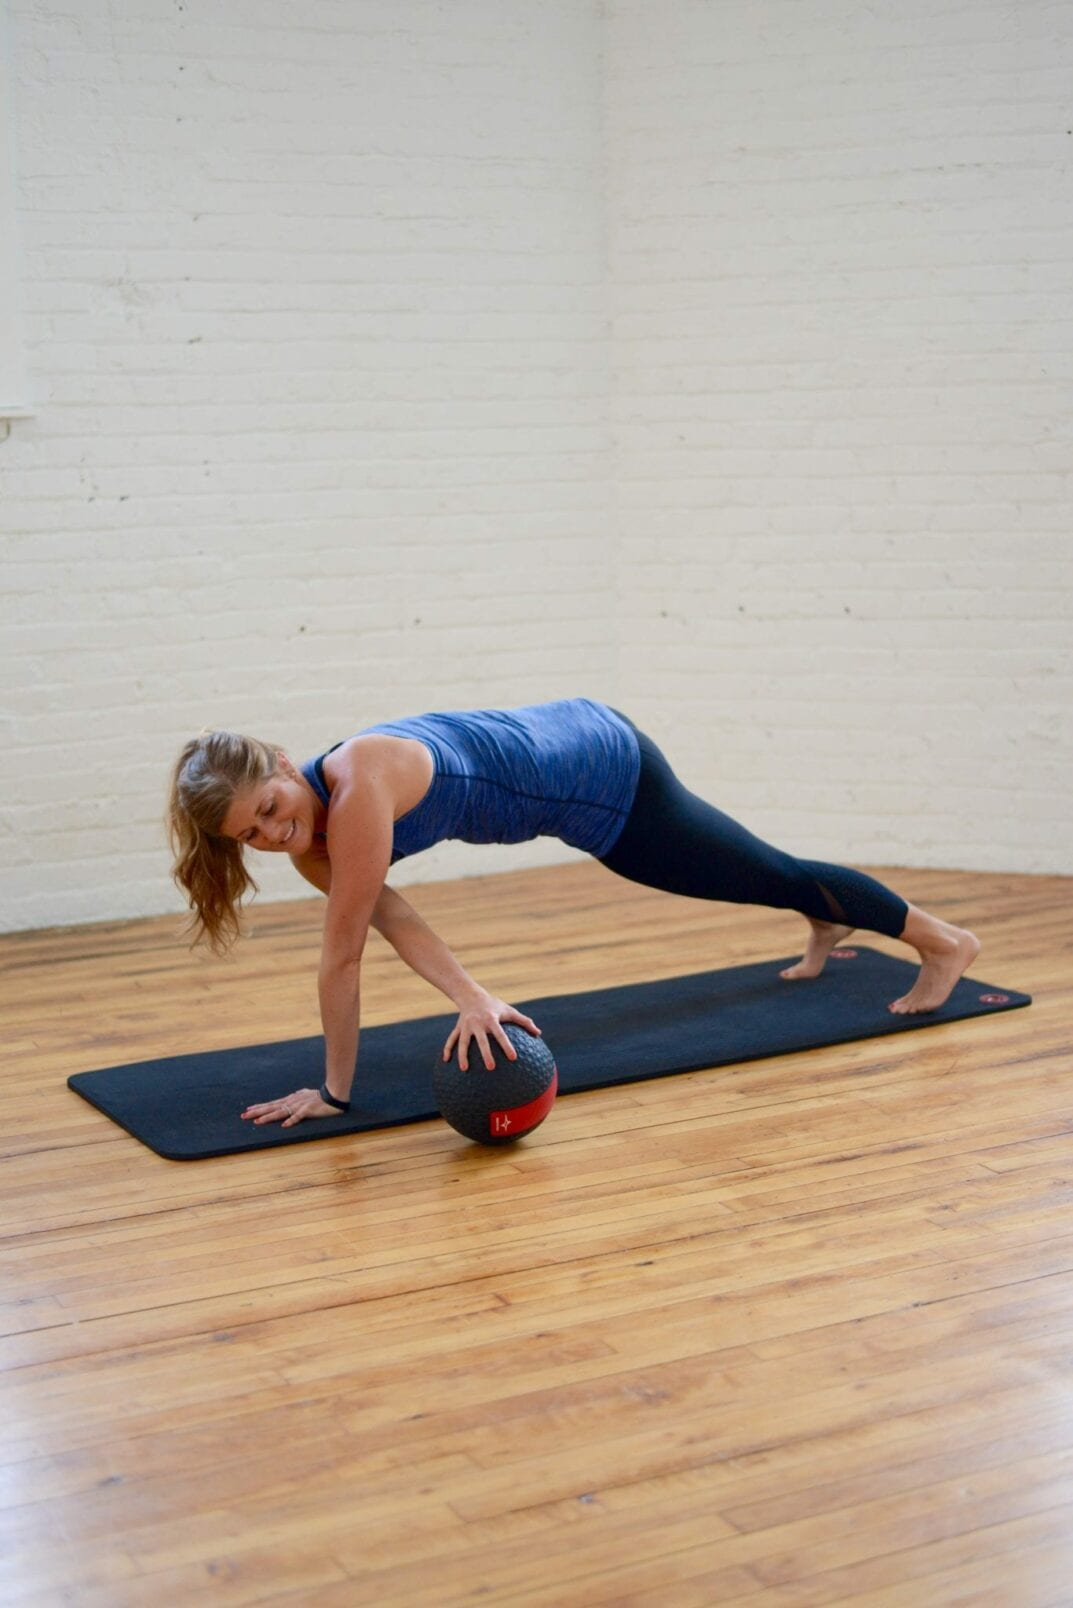 390 reps, abs of steel medicine ball workout | Incorporate this 390 rep medicine ball ab routine into your cardio and strength training to sculpt a tighter torso and flatter abs. | www.nourishmovelove.com